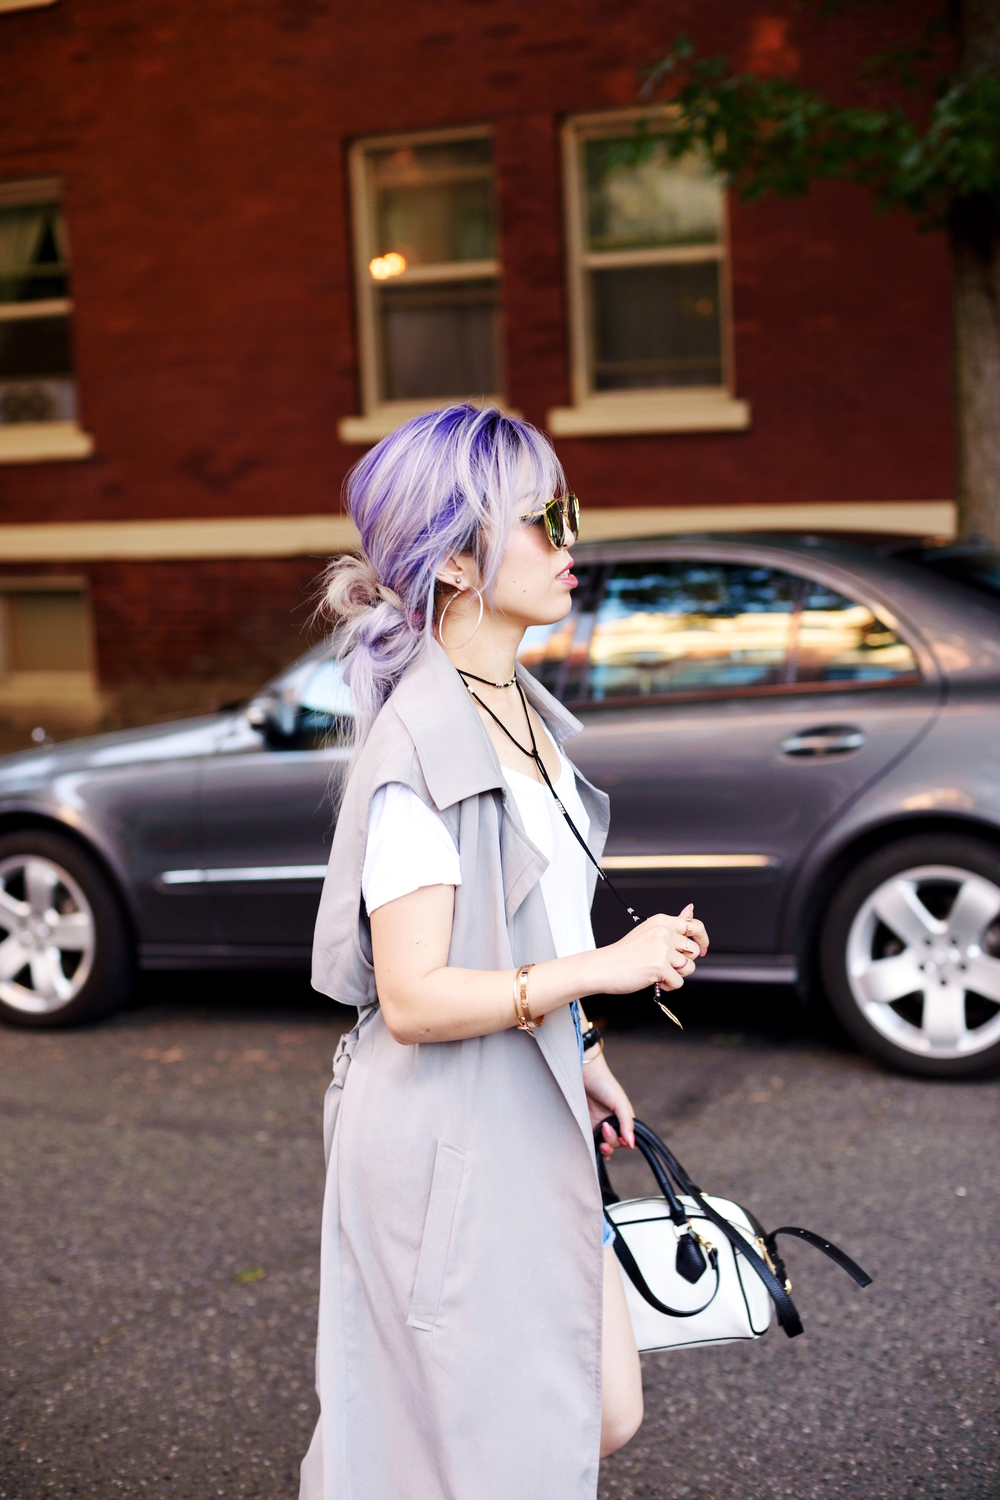 Dezzal Grey Trench Coat_TOPSHOP White T-shirt_She Inside Highwaisted Denim Mini Skit_ALDO Patent Boots_ZARA Mini Bag_Suede Choker_Daniel Wellington Watch_Aikas Love Cloeset_Seattle Fashion Blogger from Japan_Lavender Hair_Messy low bun Hair 6